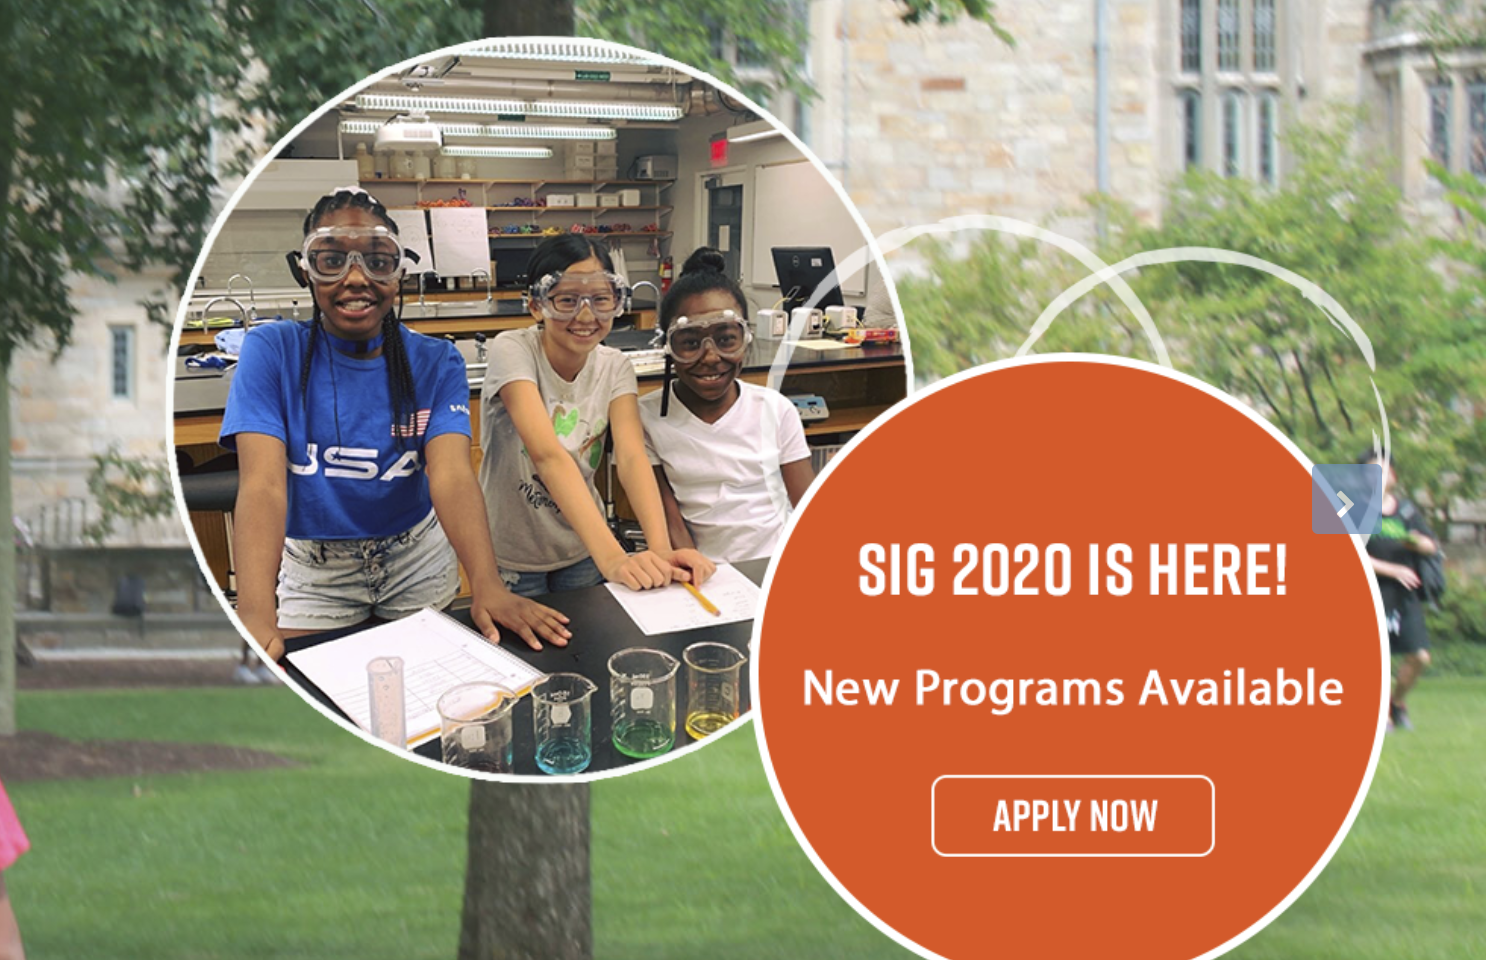 Summer Program - Technology | Summer Institute for the Gifted (SIG) Online Learning